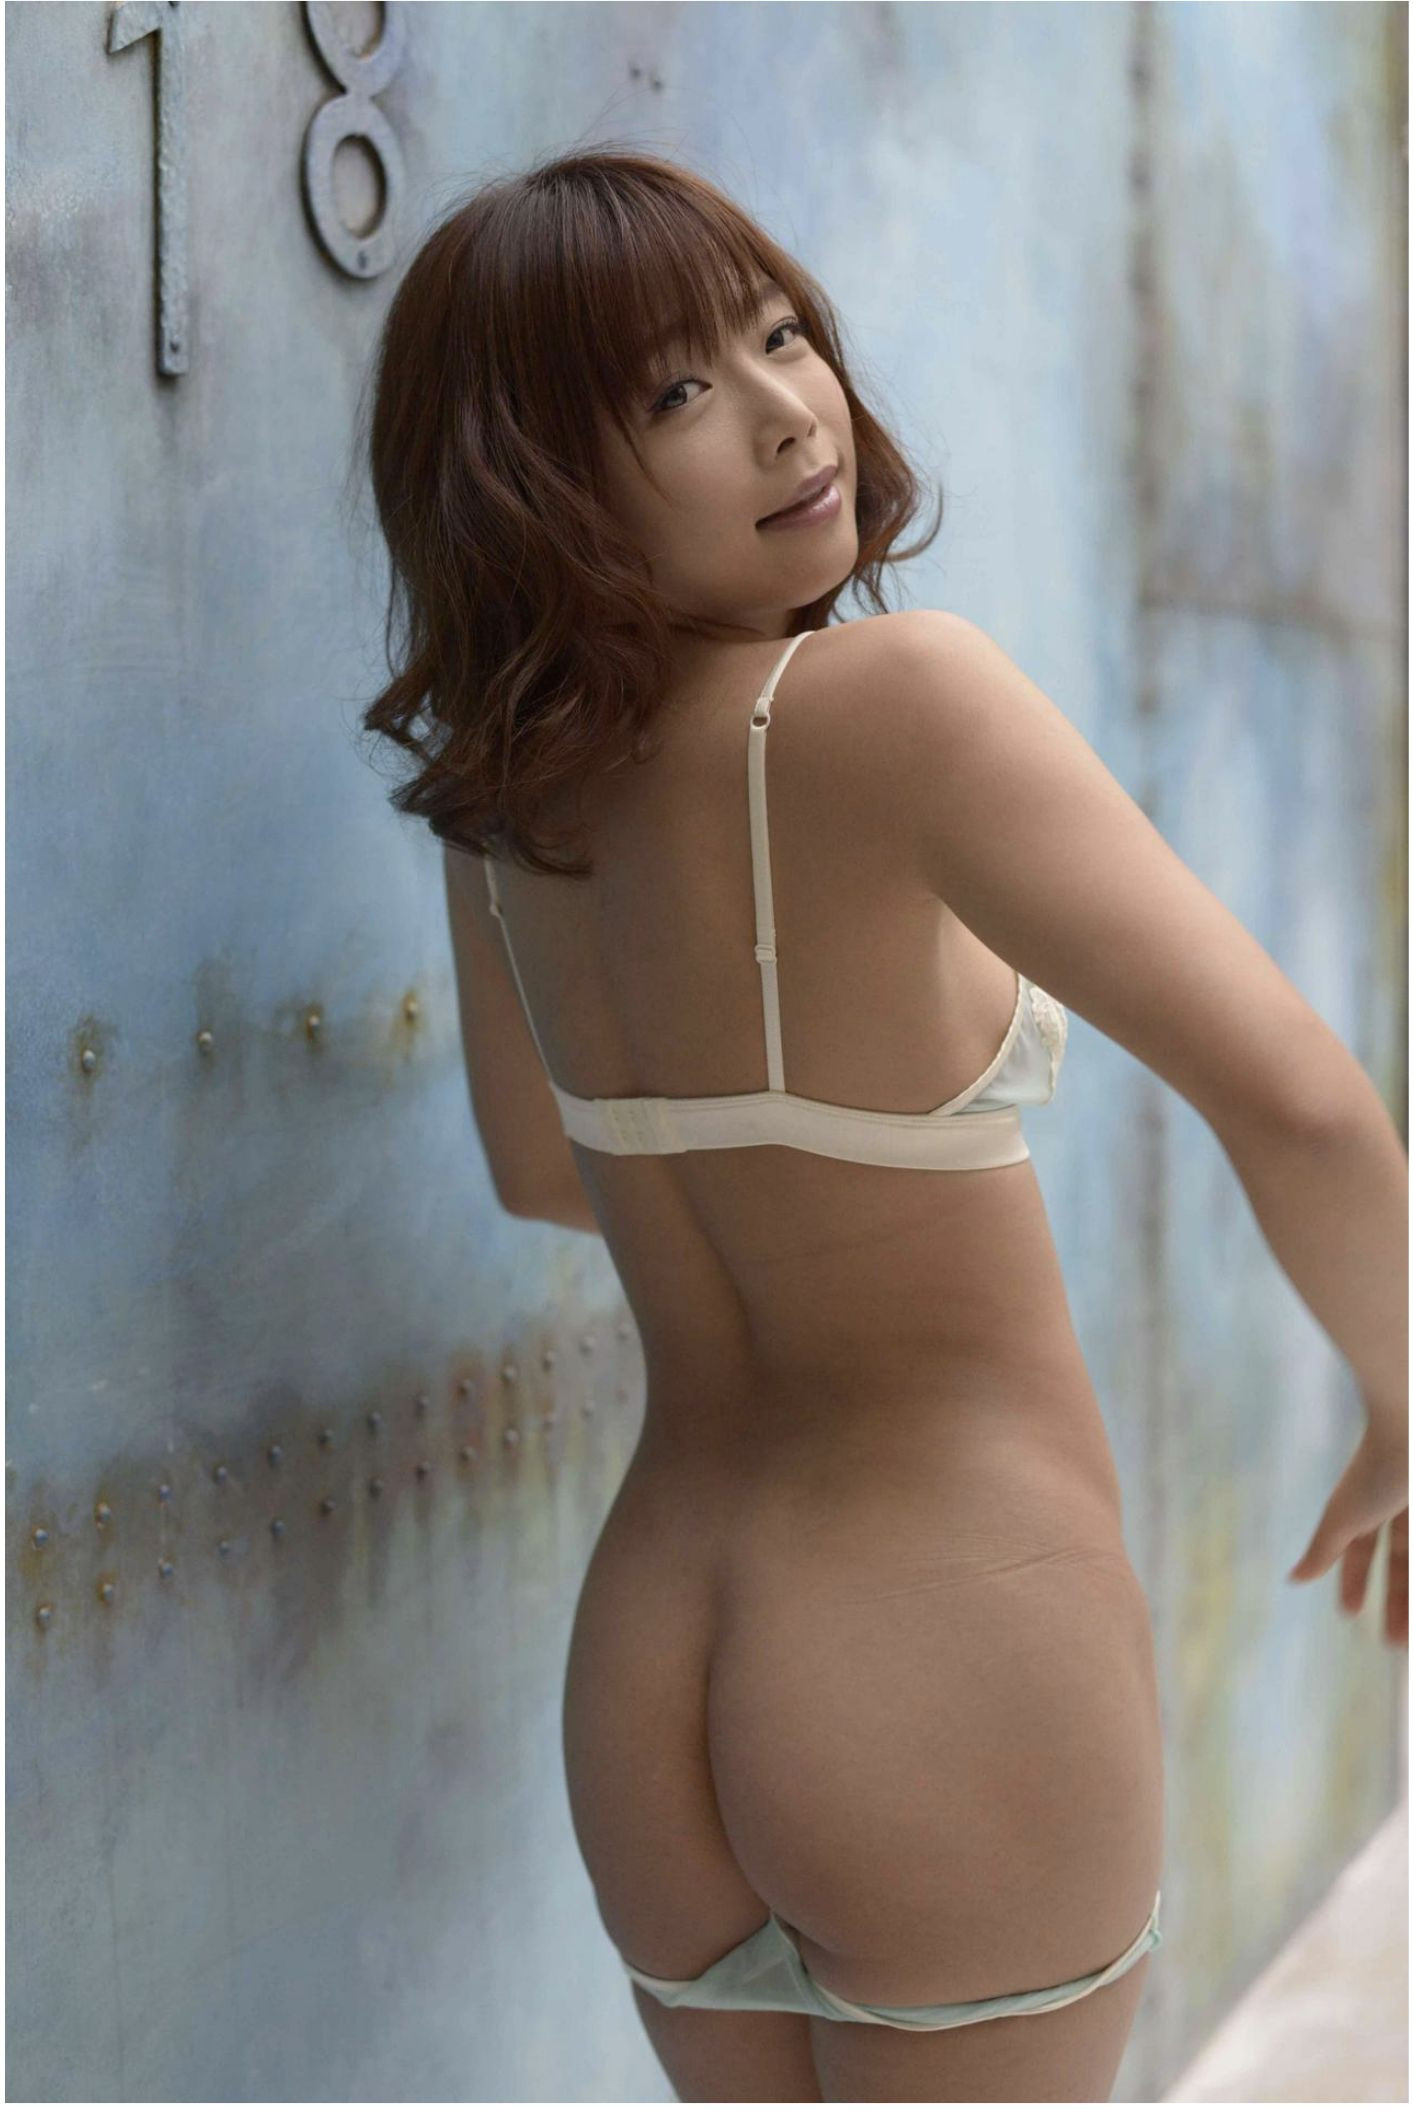 SOFT ON DEMAND GRAVURE COLLECTION 紗倉まな04 photo 086